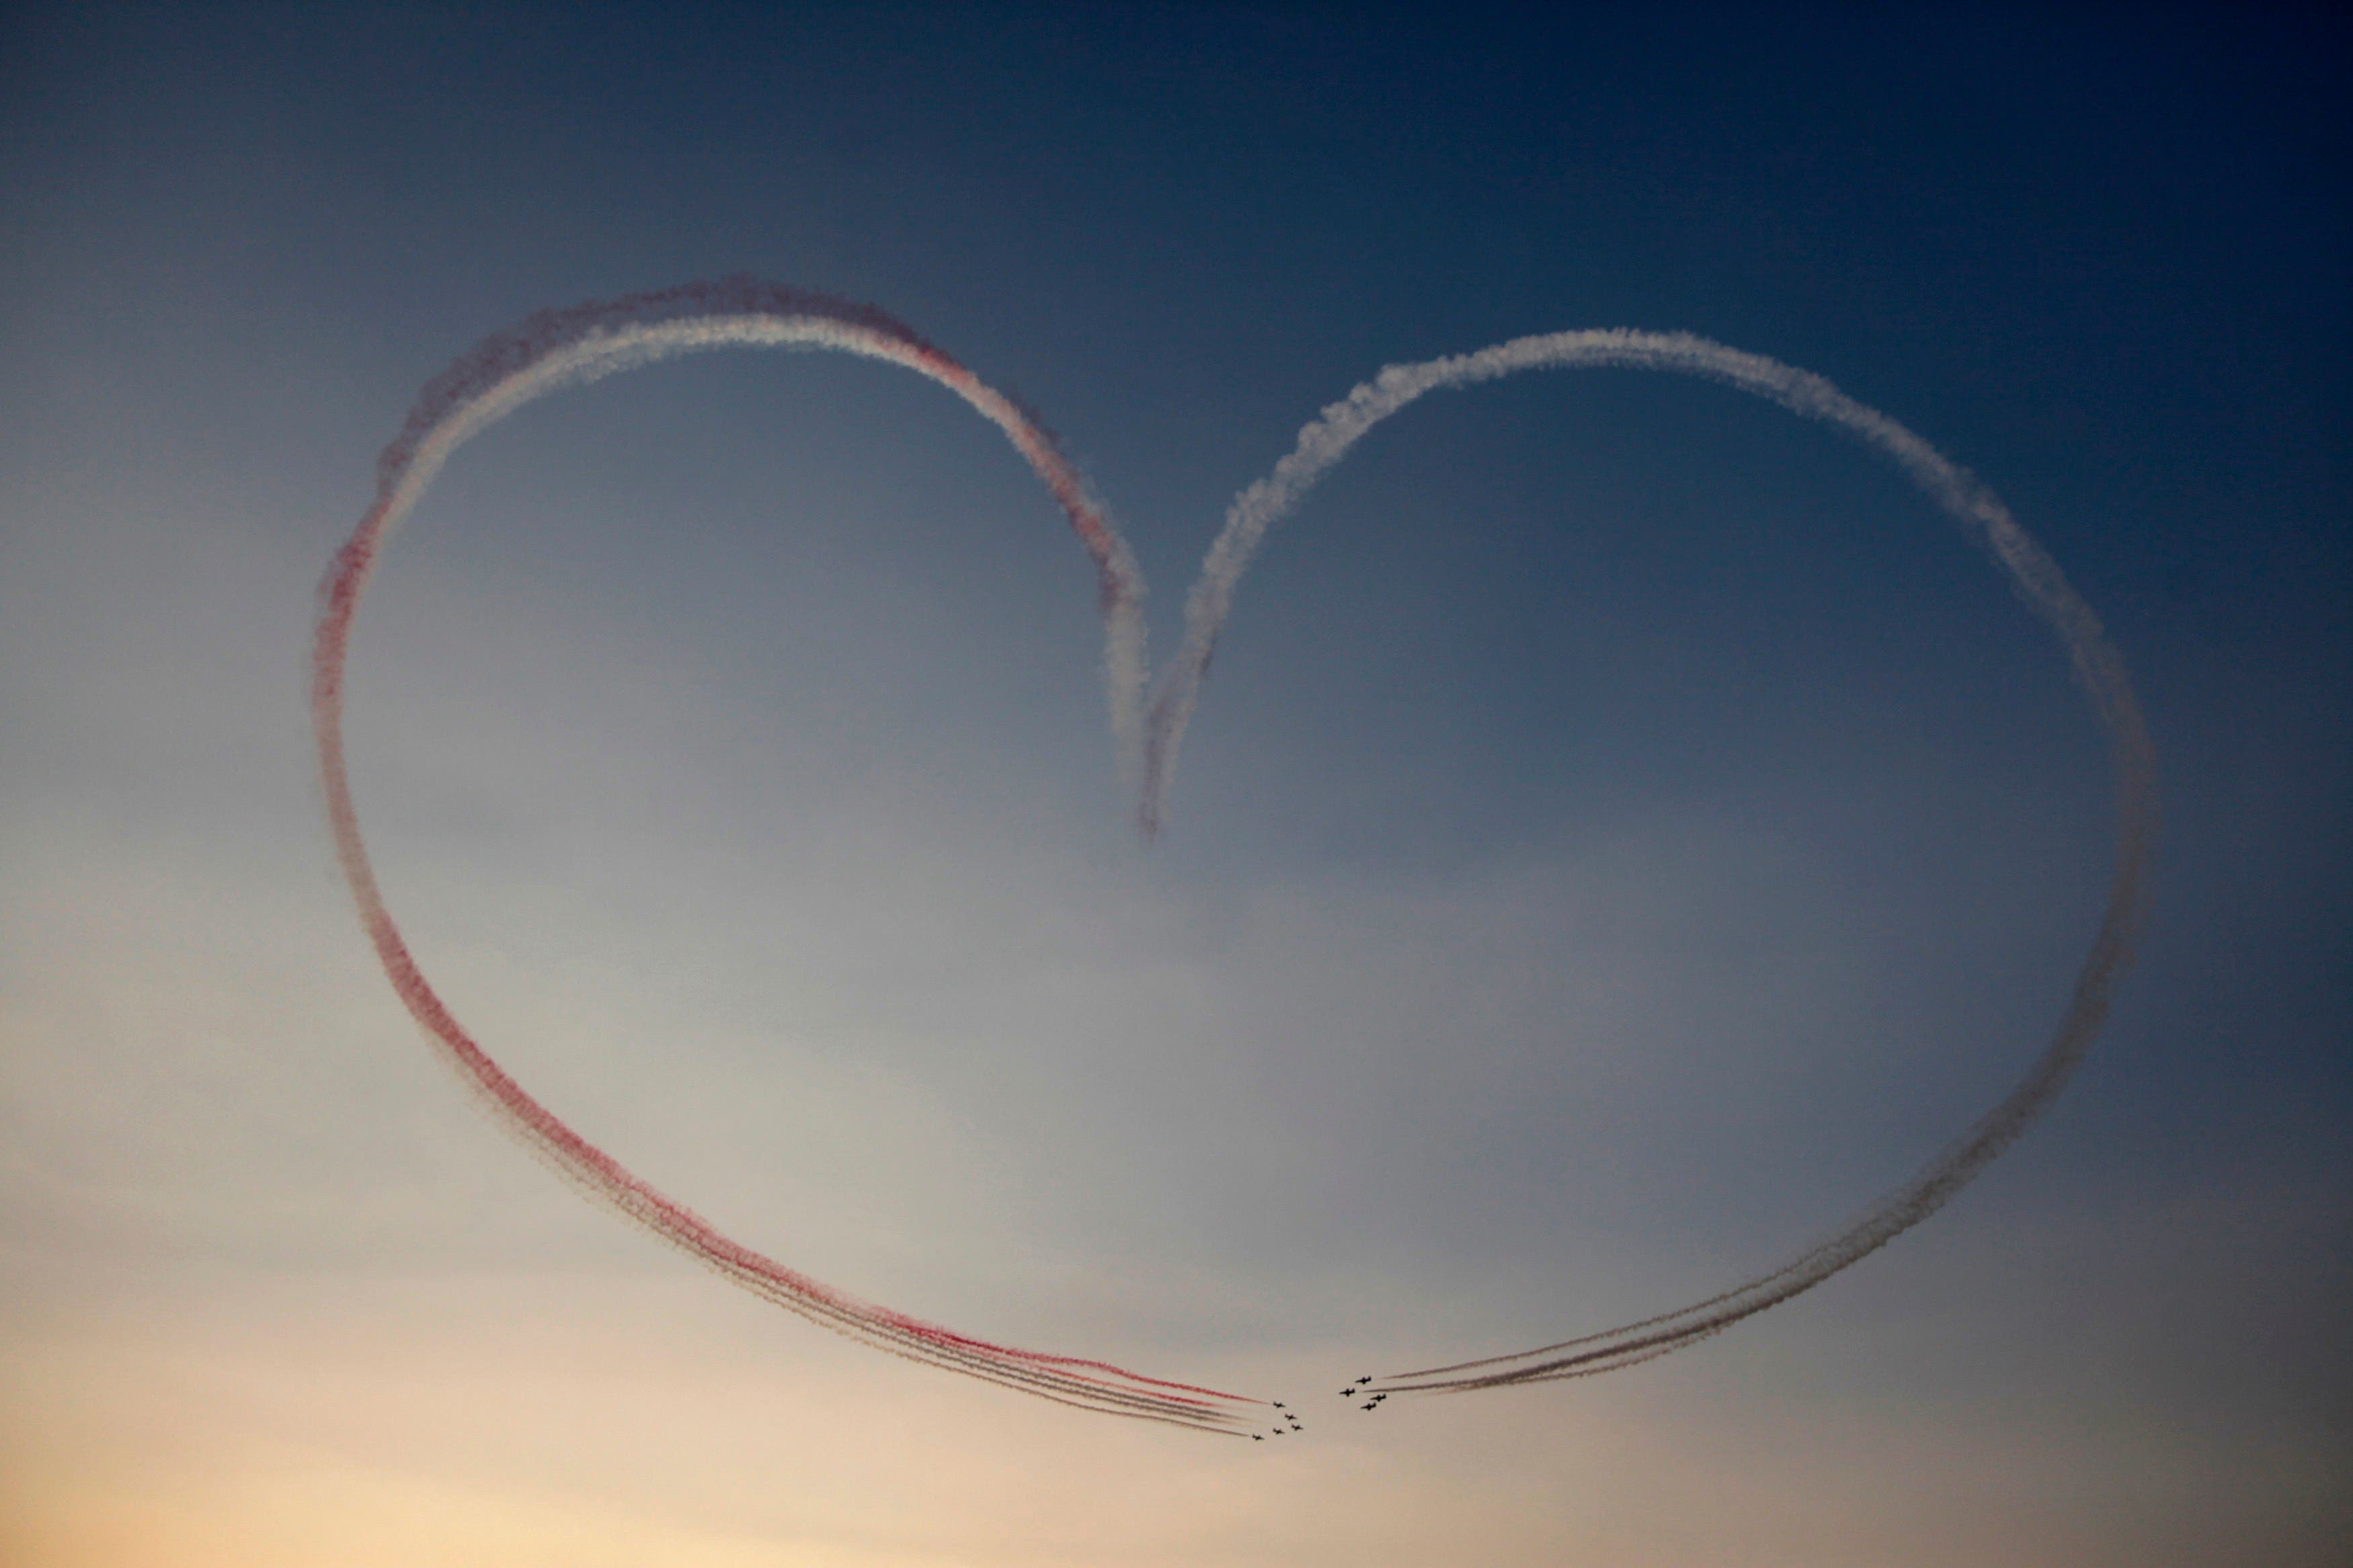 Military aircraft participate in flying display over Tahrir Square as Egypt celebrates the anniversary of an attack on Israeli forces during the 1973 war, in Cairo October 6, 2013. (Reuters)